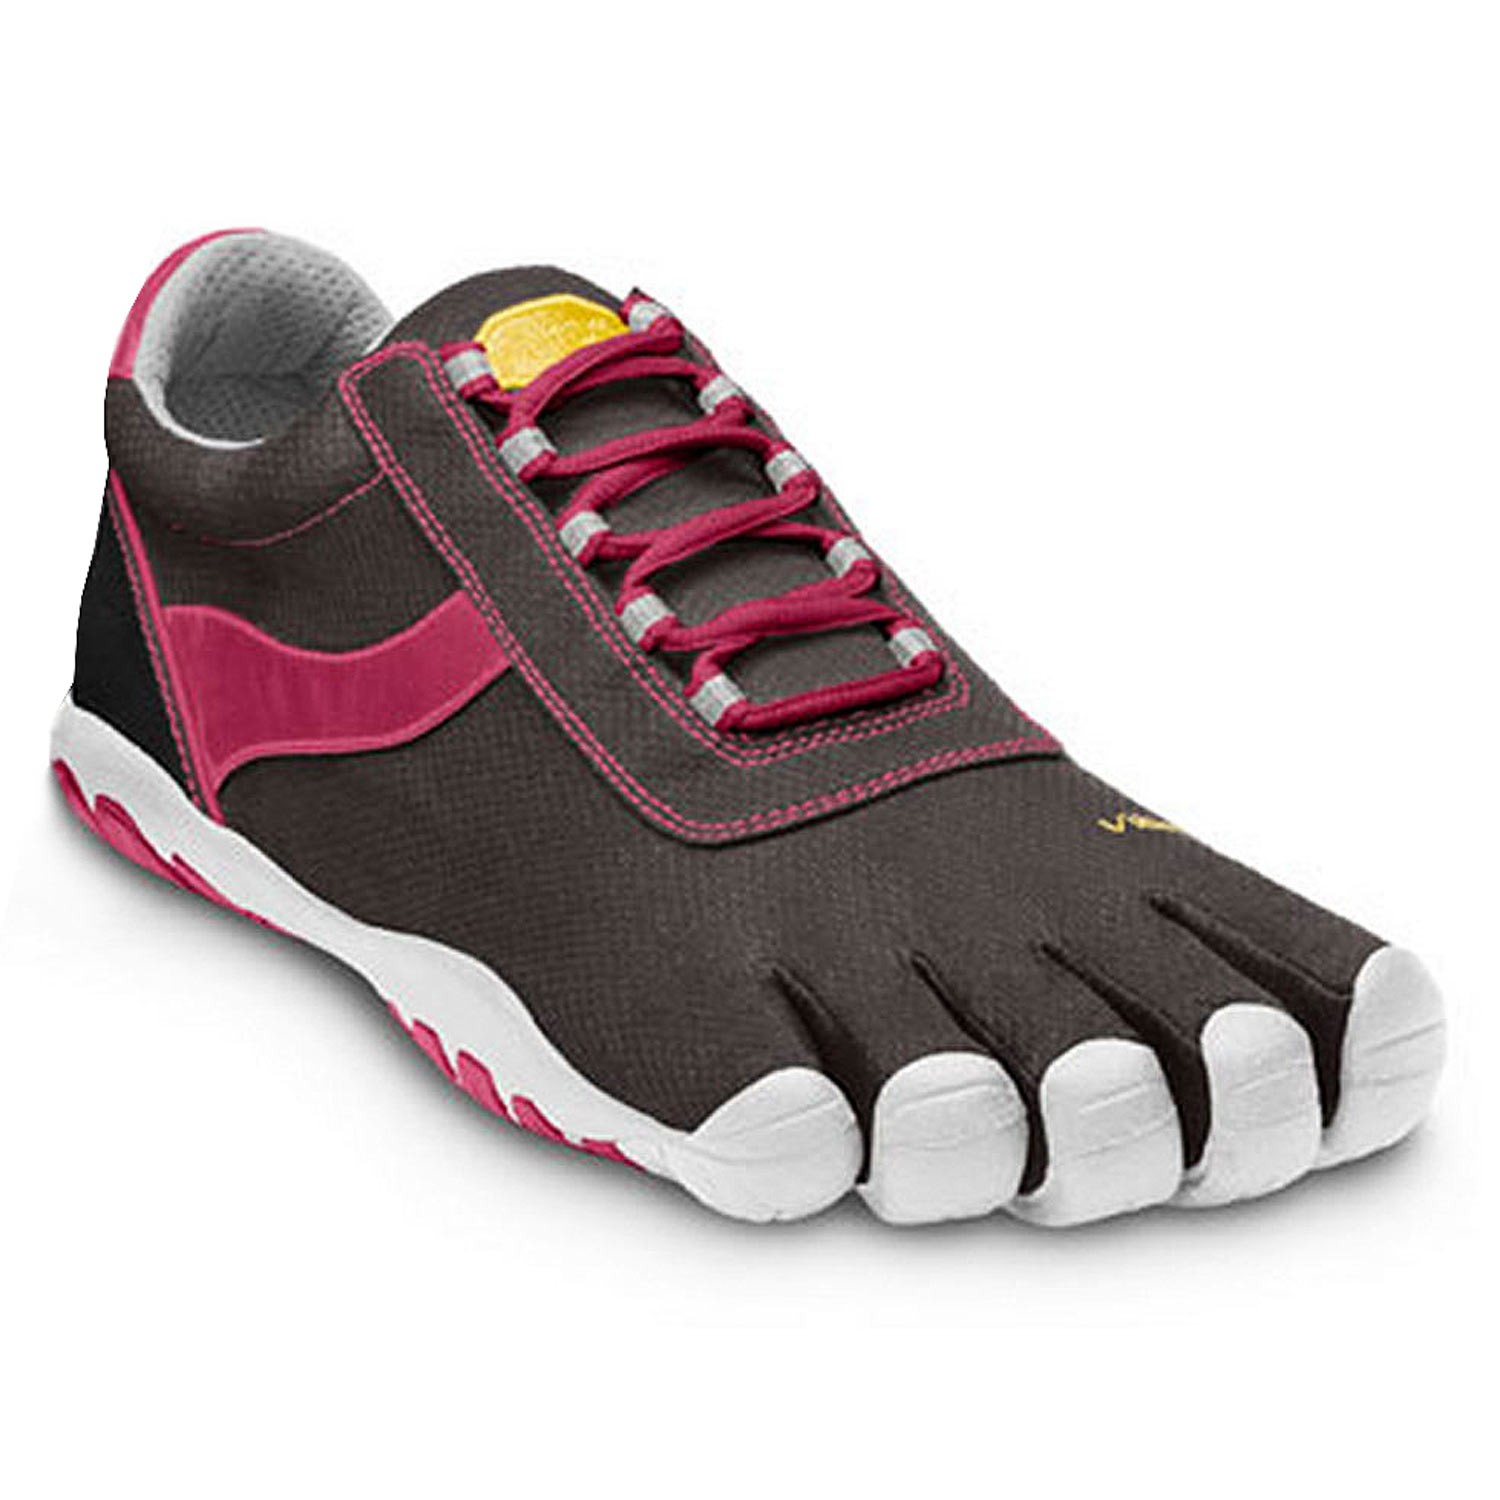 vibram fivefingers speed women preisvergleich sportschuh g nstig kaufen bei. Black Bedroom Furniture Sets. Home Design Ideas